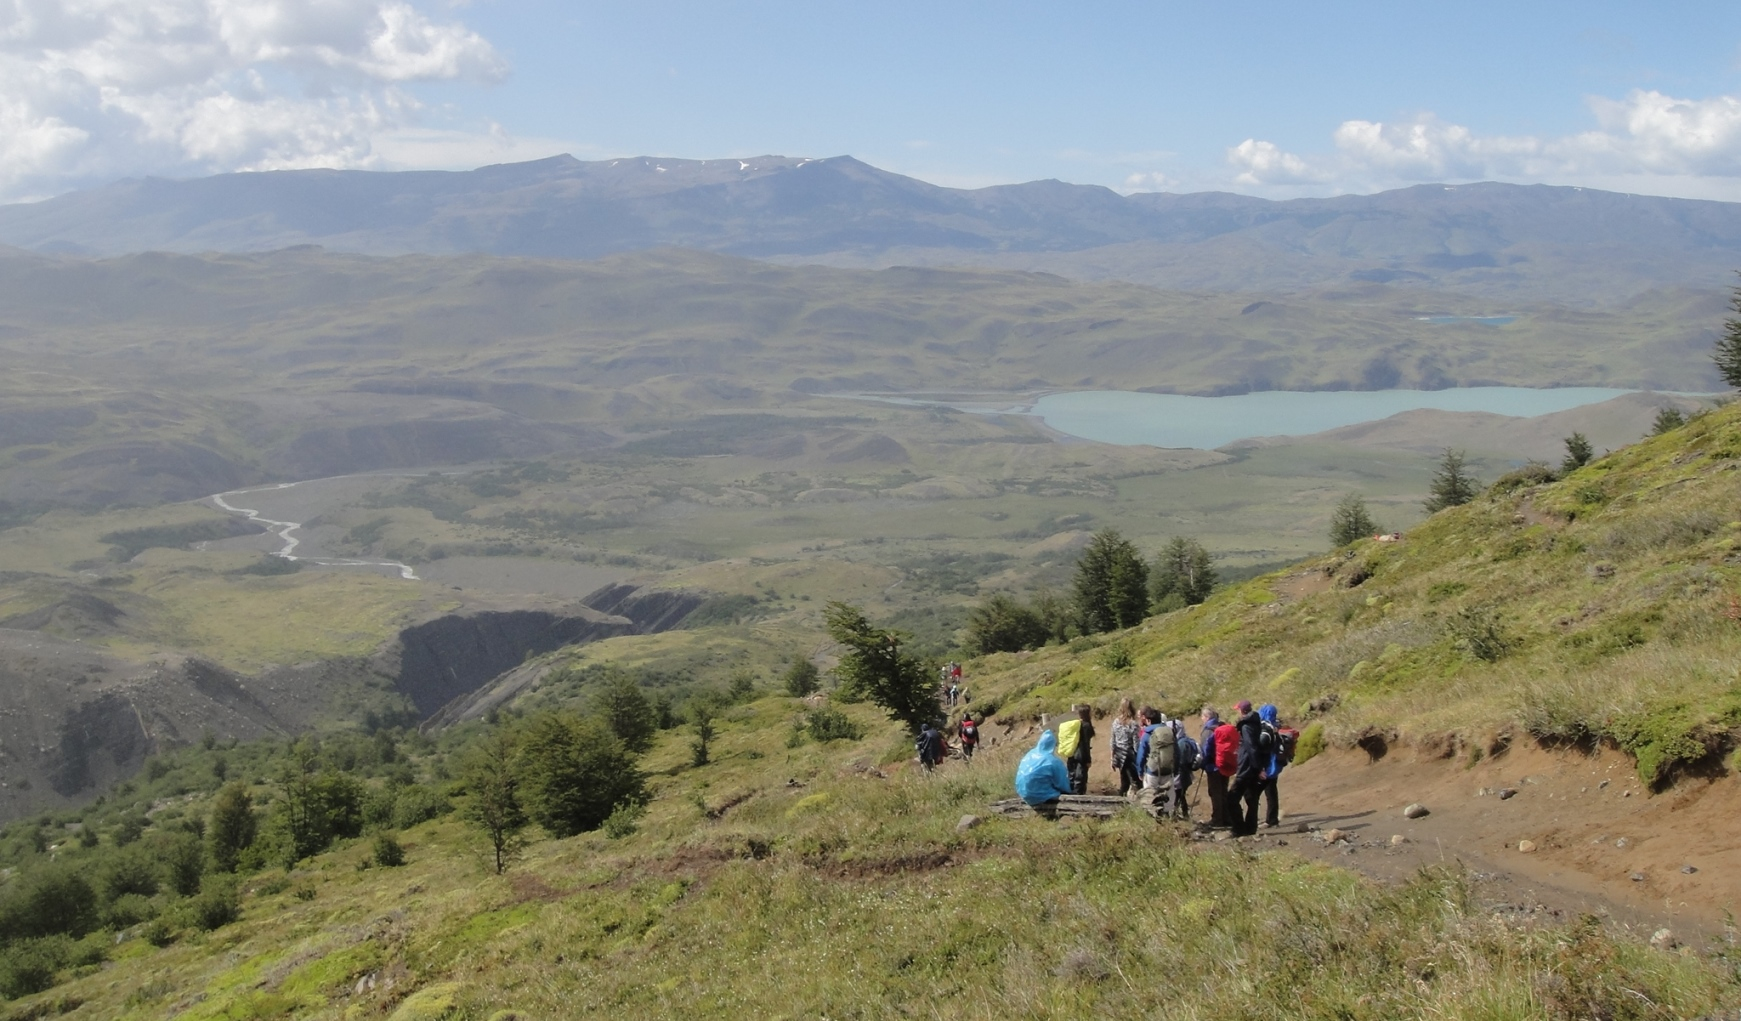 Day 2 in Torres Del Paine – Chilean Patagonia